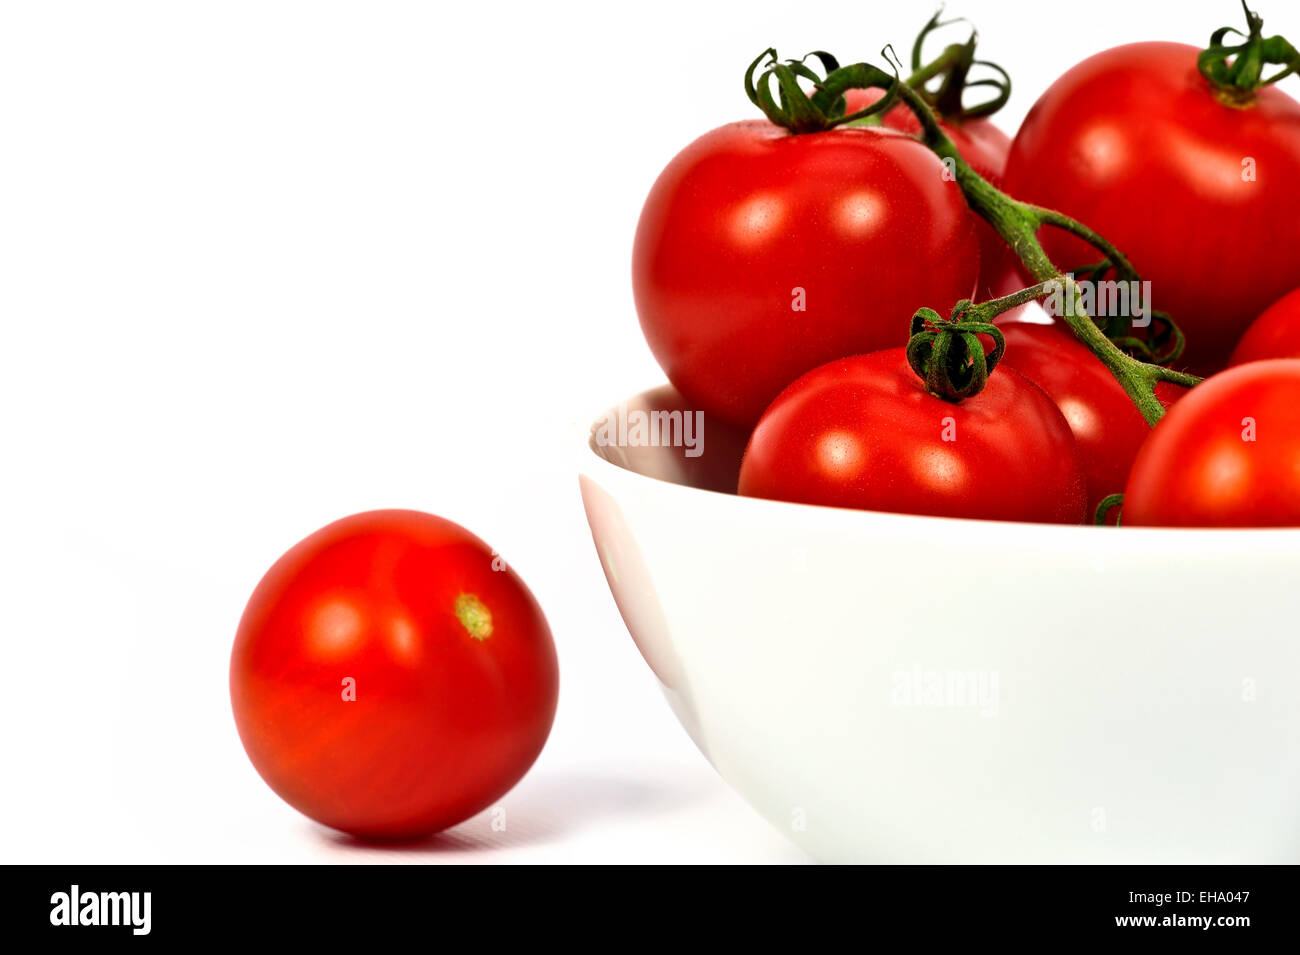 Bowl of ripe tomatoes on the vine - Stock Image